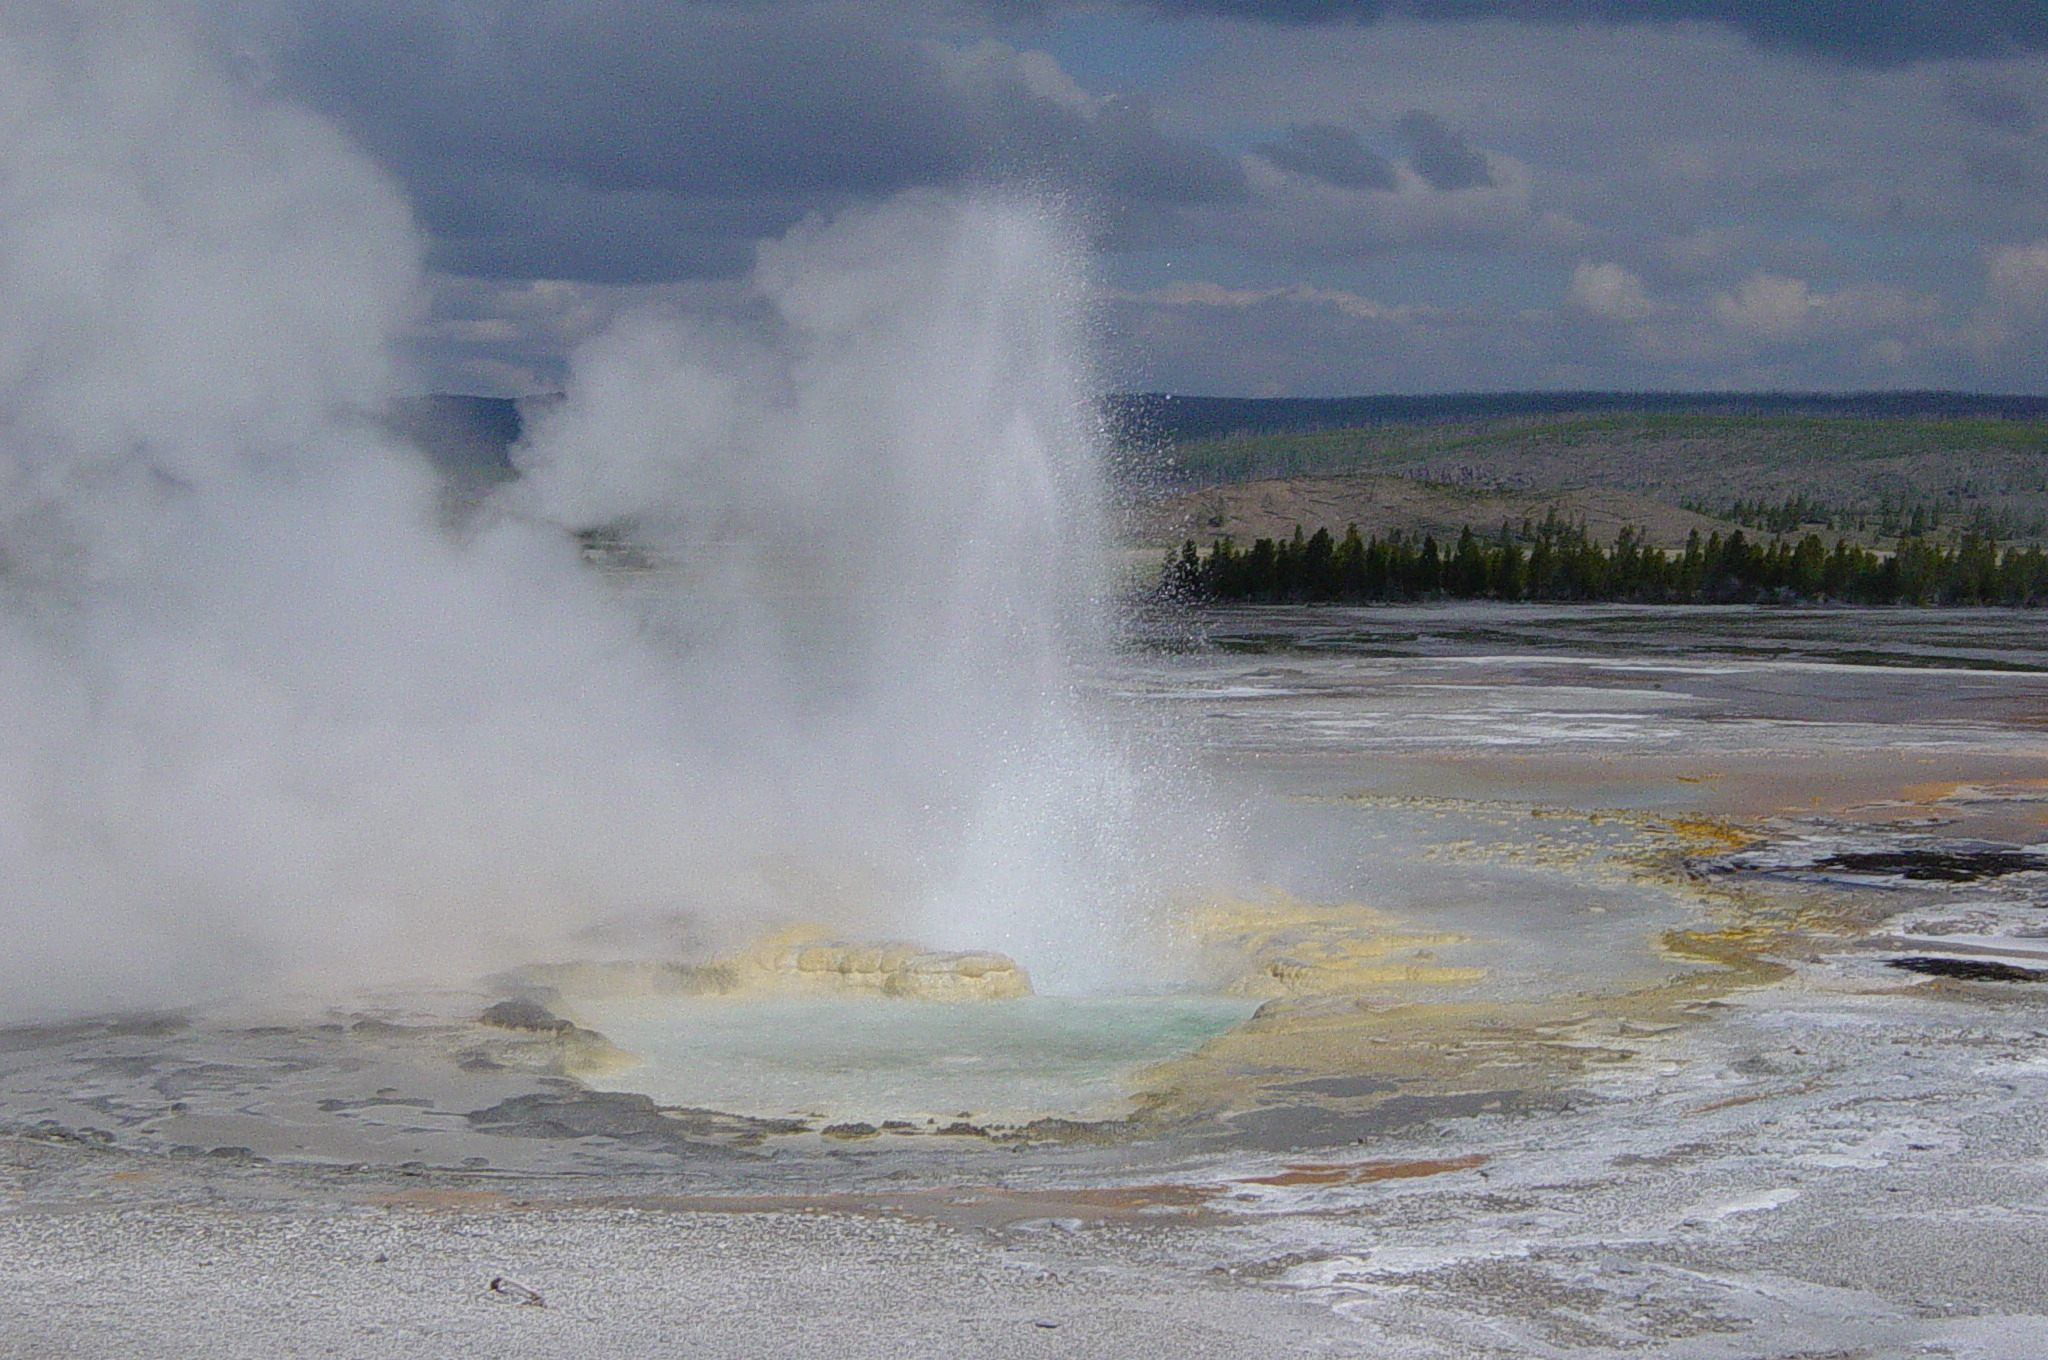 Clepsydra Geyster in Yellowstone National Park.  Photo on Wikimedia Commons by Daniel Mayer